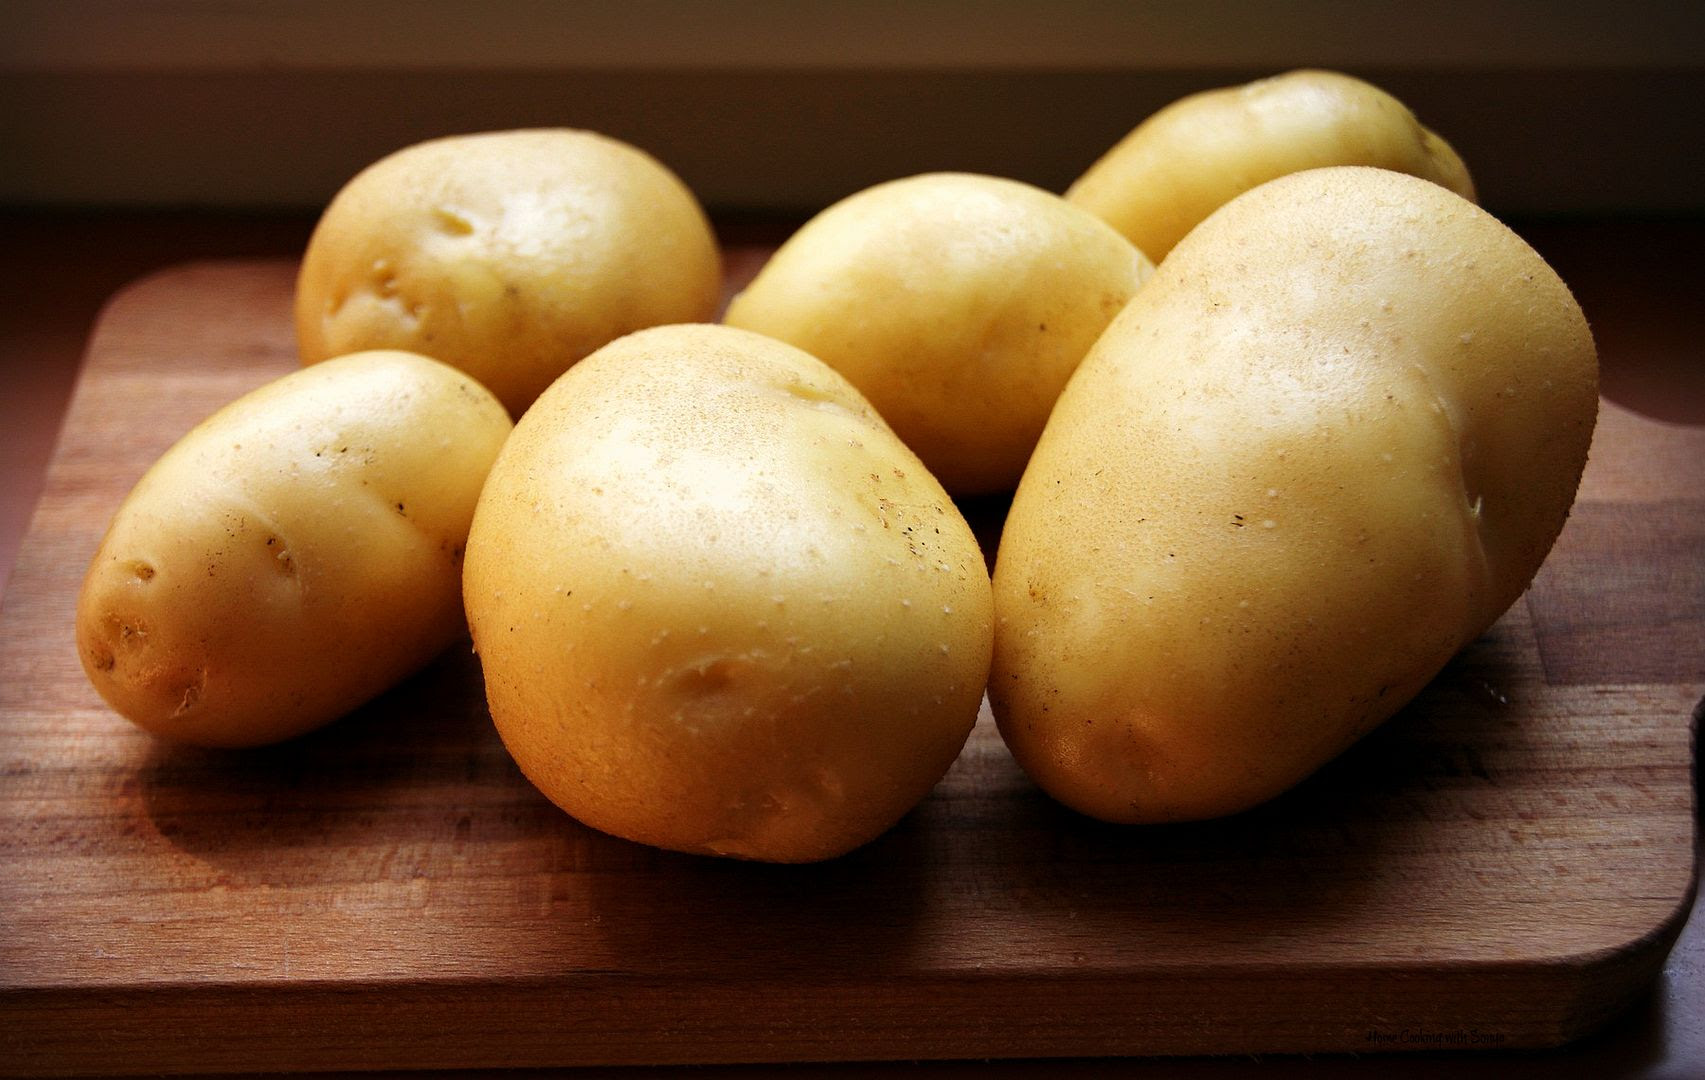 Mon Aug 11, 2014 photo potatoes2_zps0c0daede.jpg